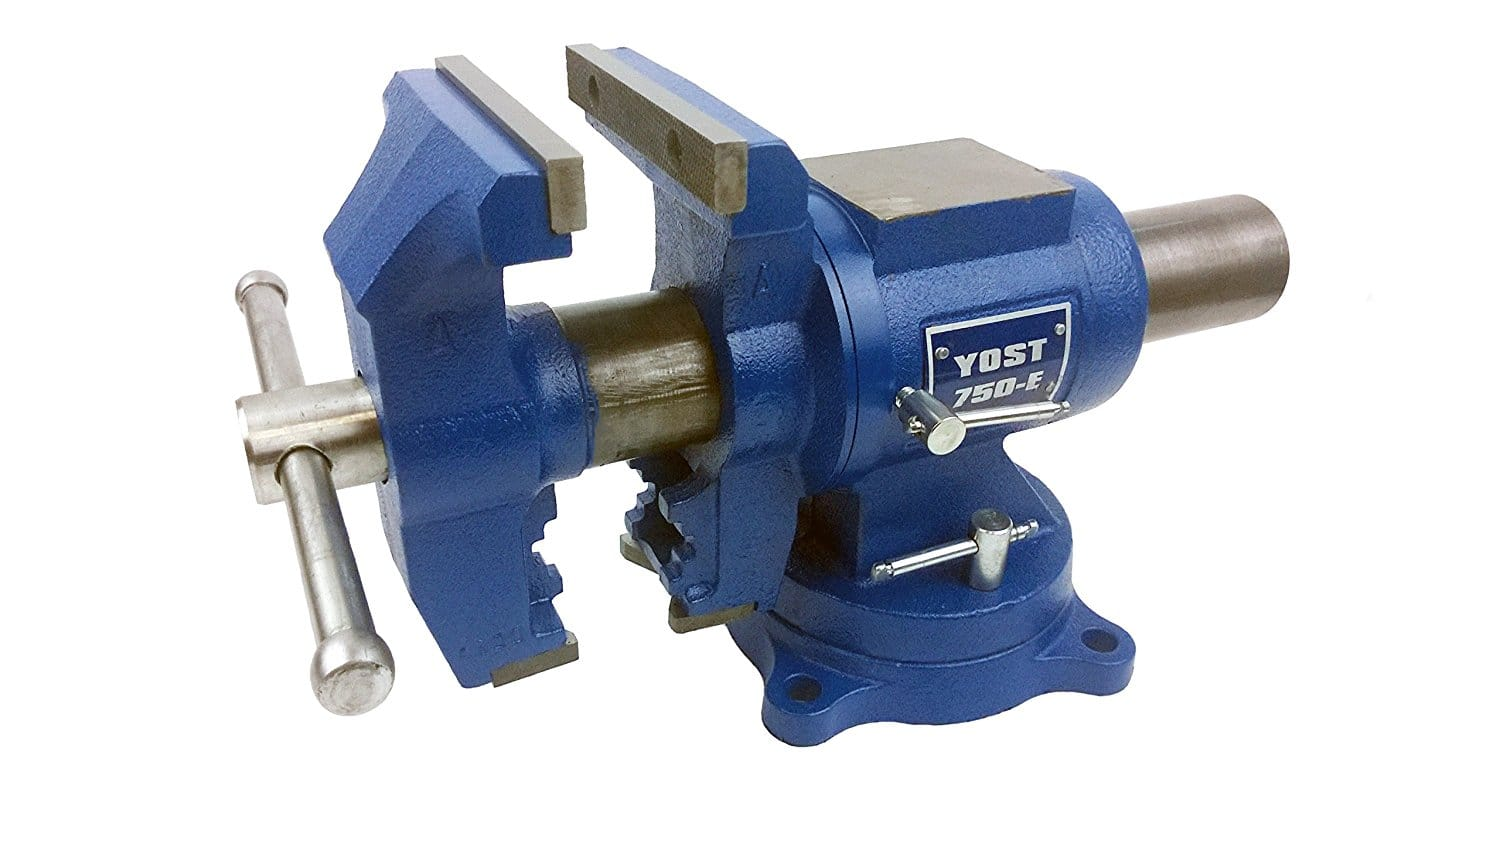 Yost 750-E Rotating Bench Vise $79.99 + Free Shipping for Prime Members